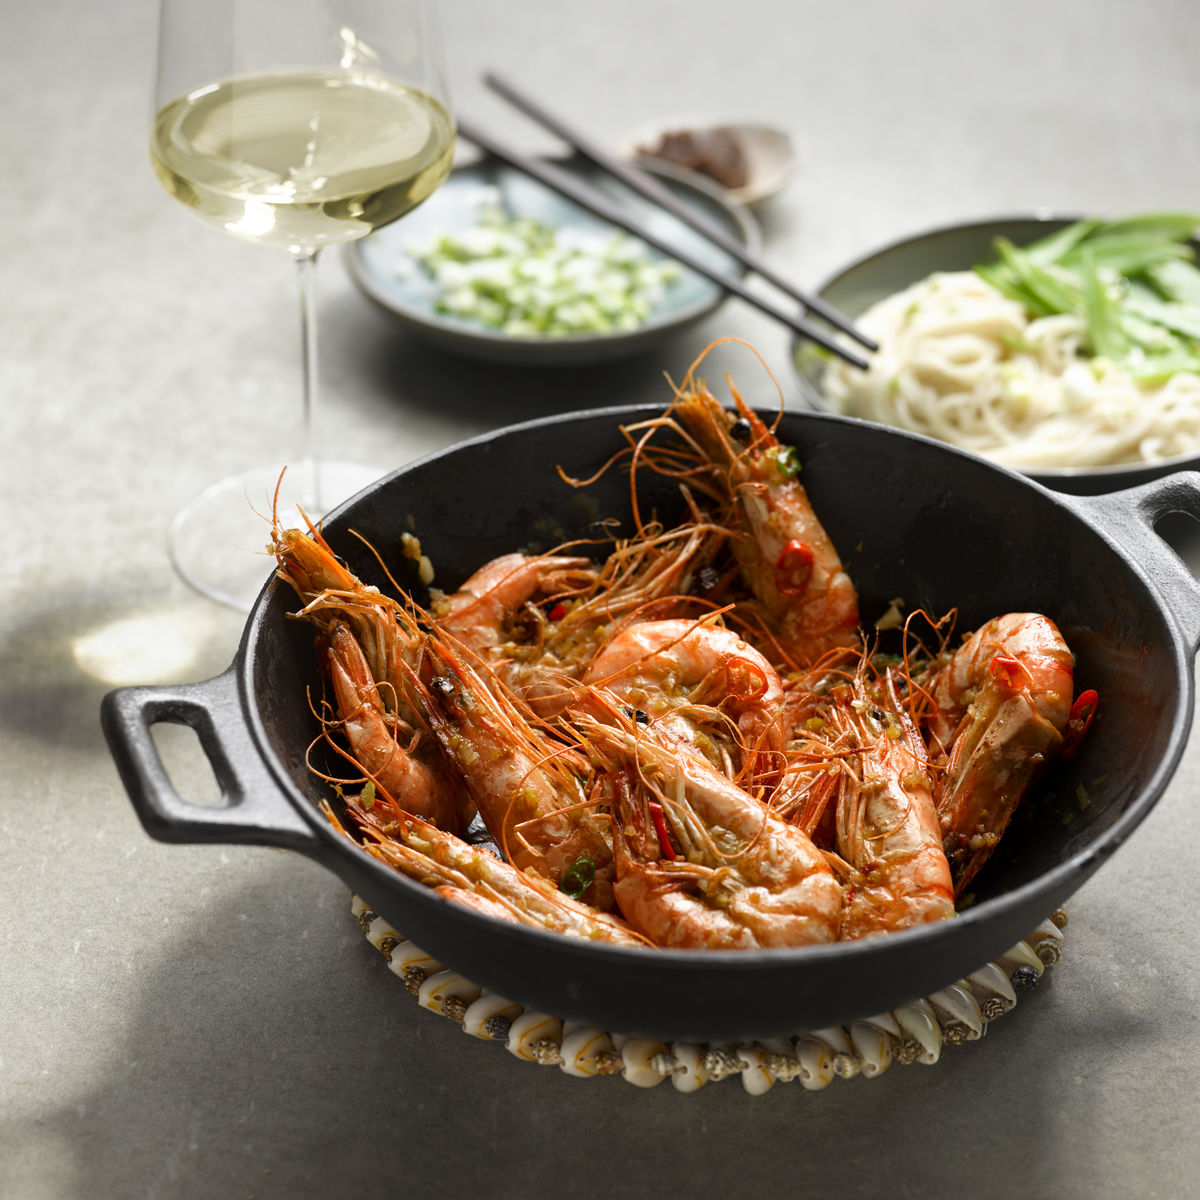 The picture shows the dish spicy prawns and a glass of white wine.